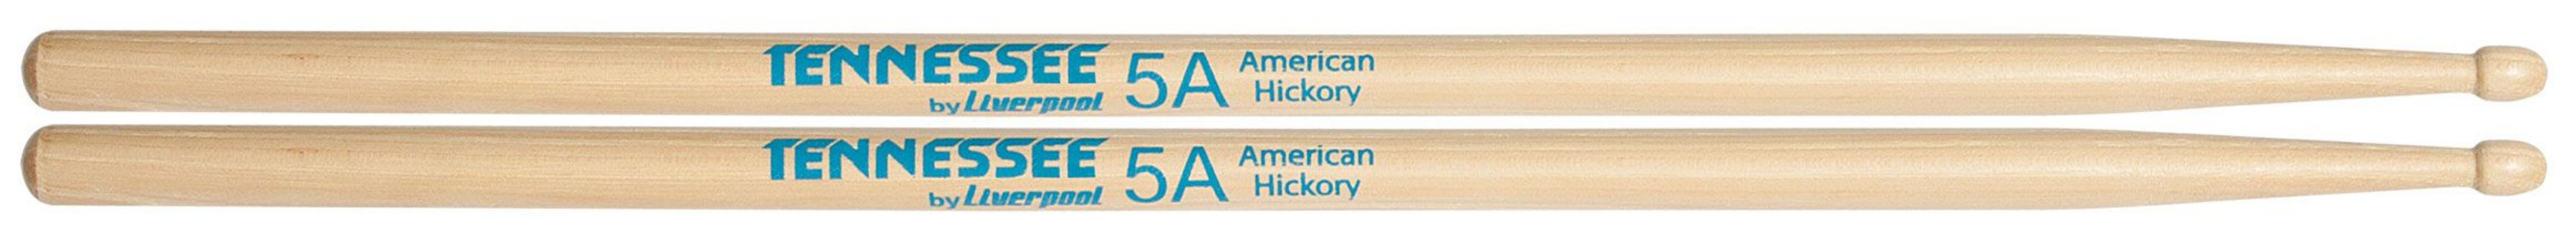 Liverpool Tennessee Baqueta American Hickory 5a P.M Tnhy5am